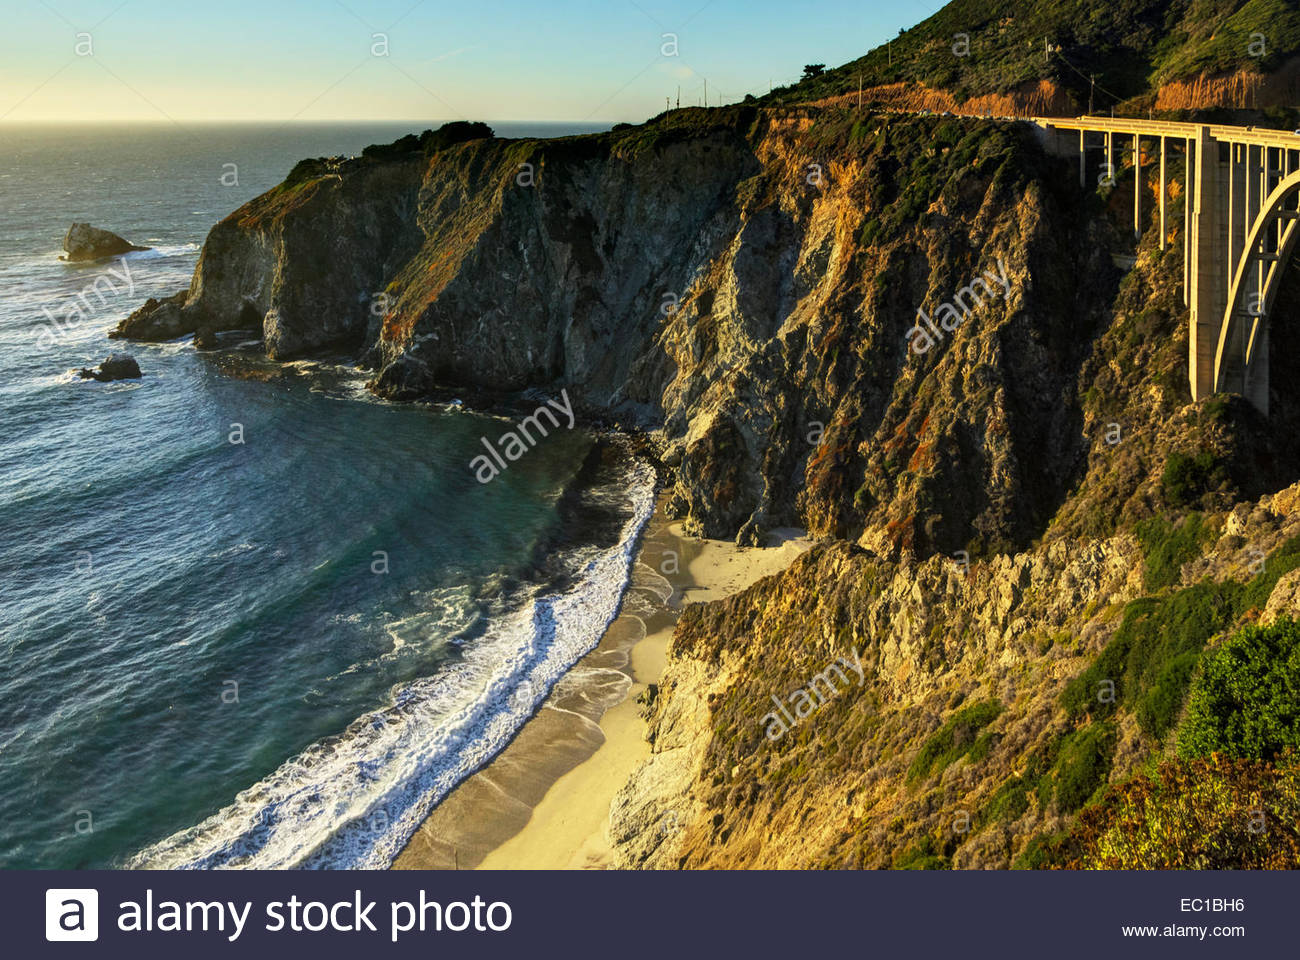 Bixby Bridge is a famous Cabrillo Highway (California One, coast road) landmark nearby house perched dramatically - Stock Image